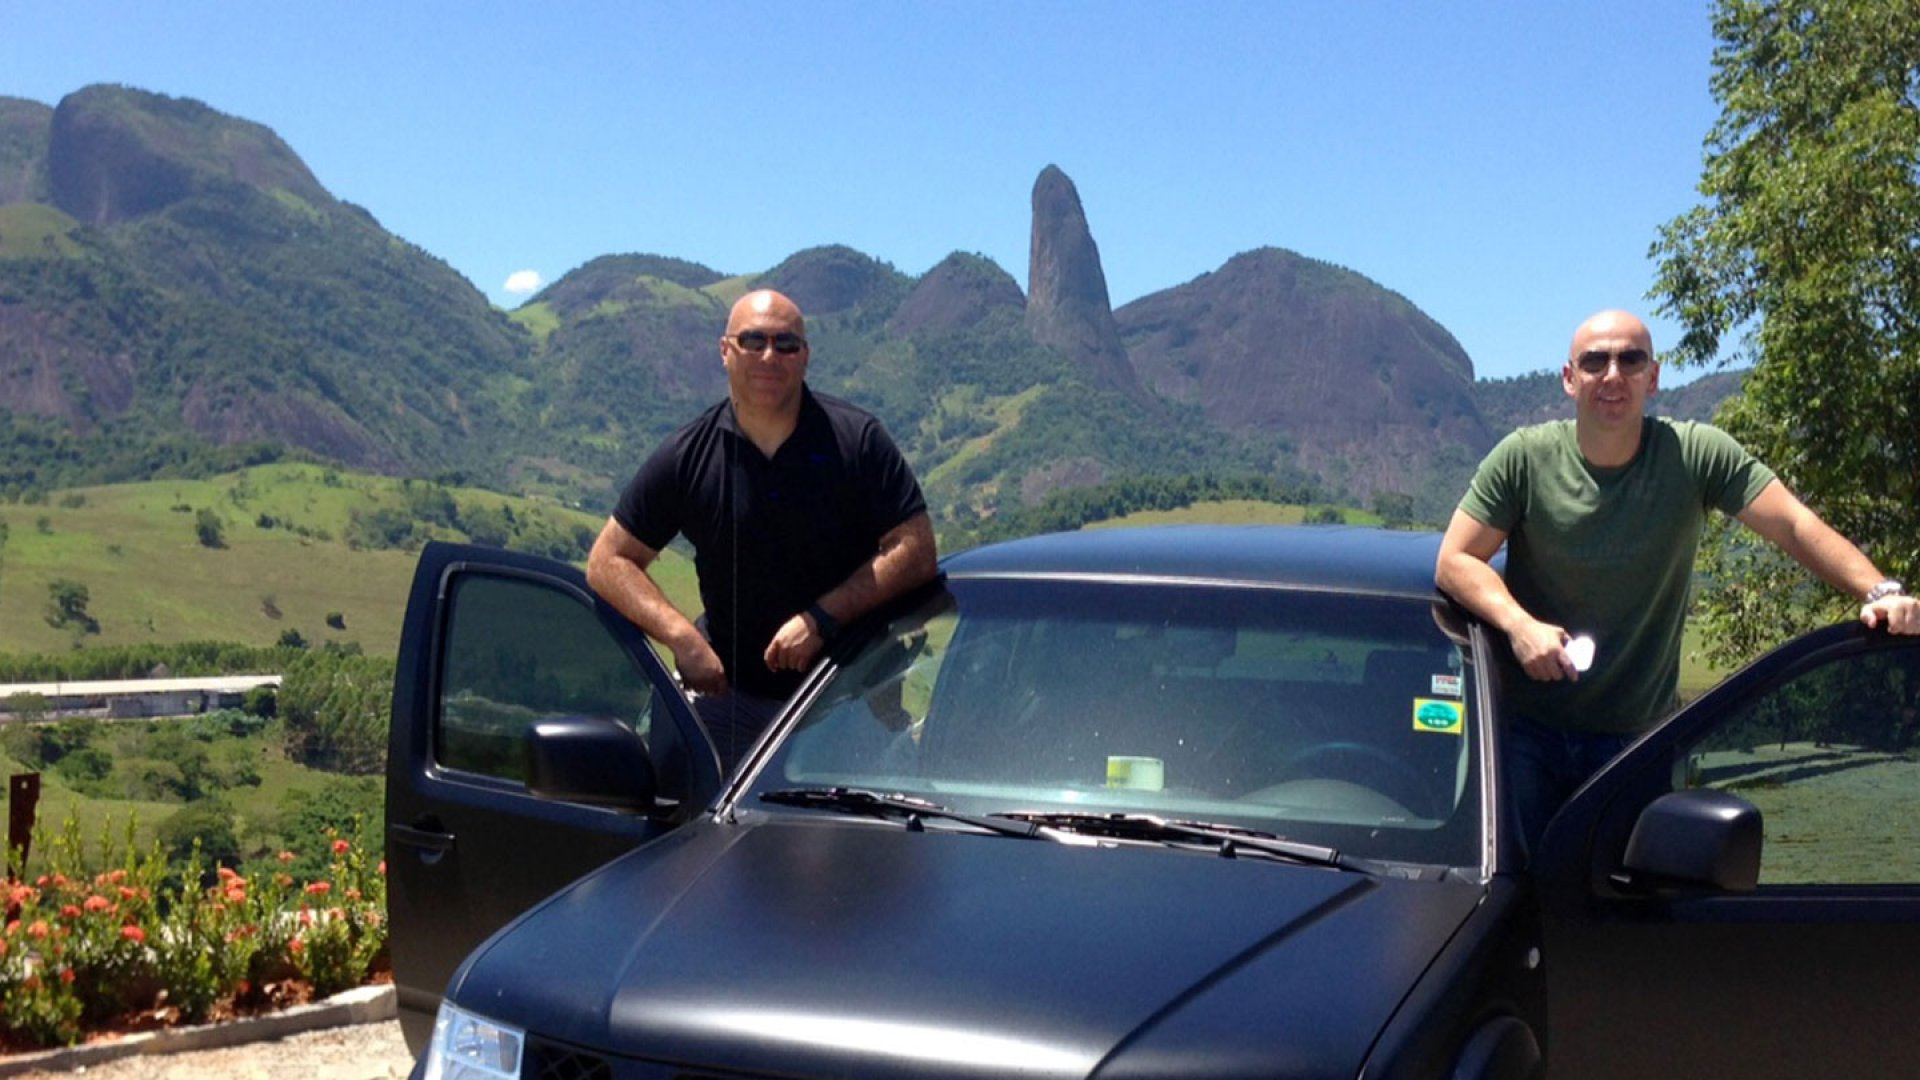 Business partners Marco Pereira (left) and Vinny Tavares (right) visit Brazil several times a year to buy blocks of granite directly from rural quarries.